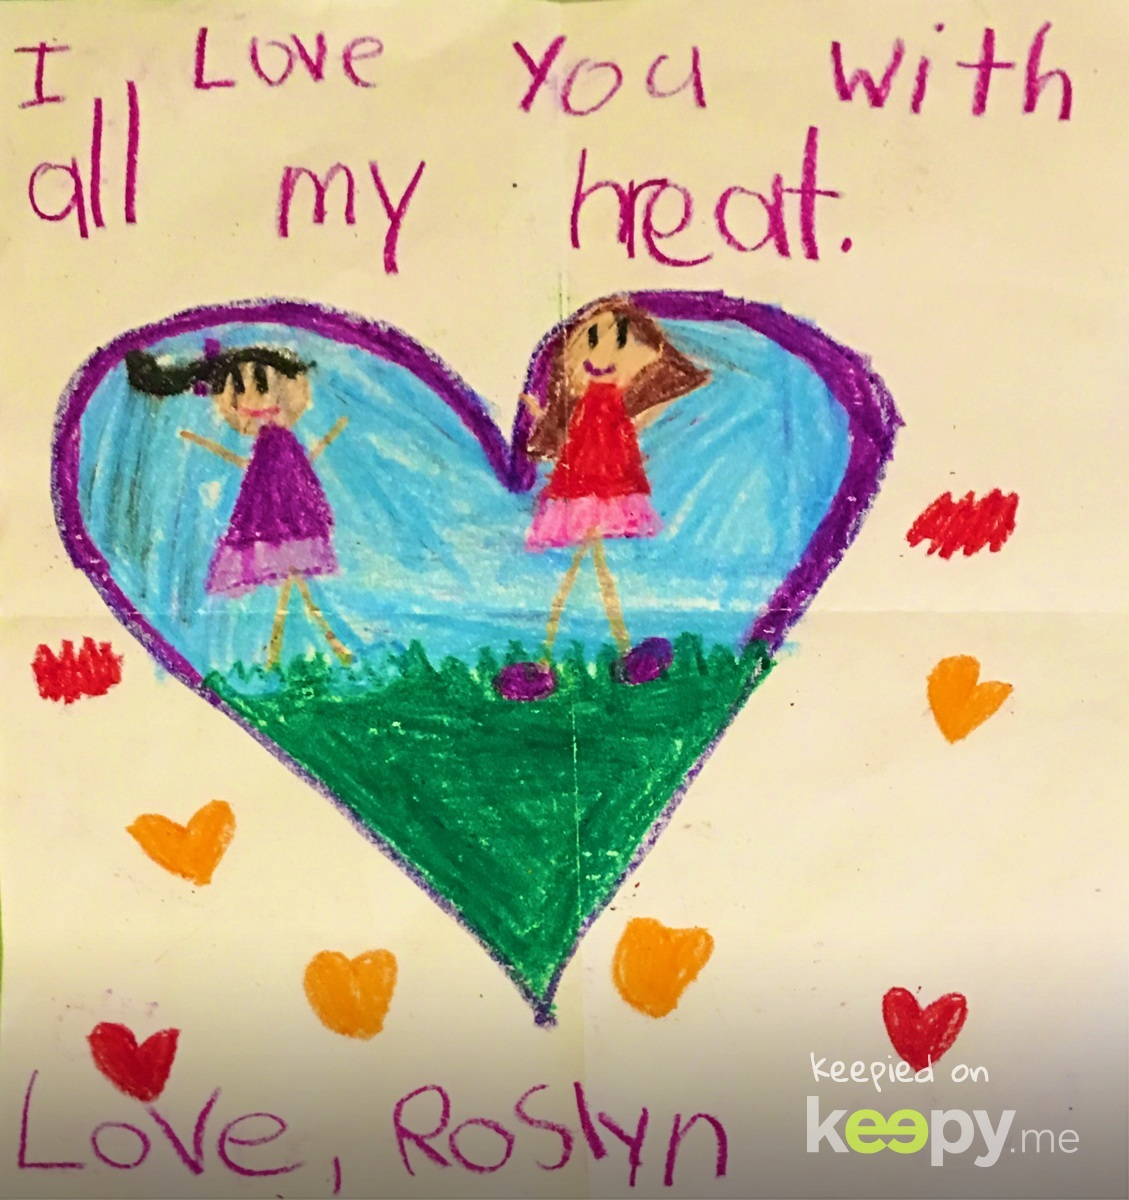 """I love you with all my h(r)eat"". Too cute. #RoslynJ #2018"